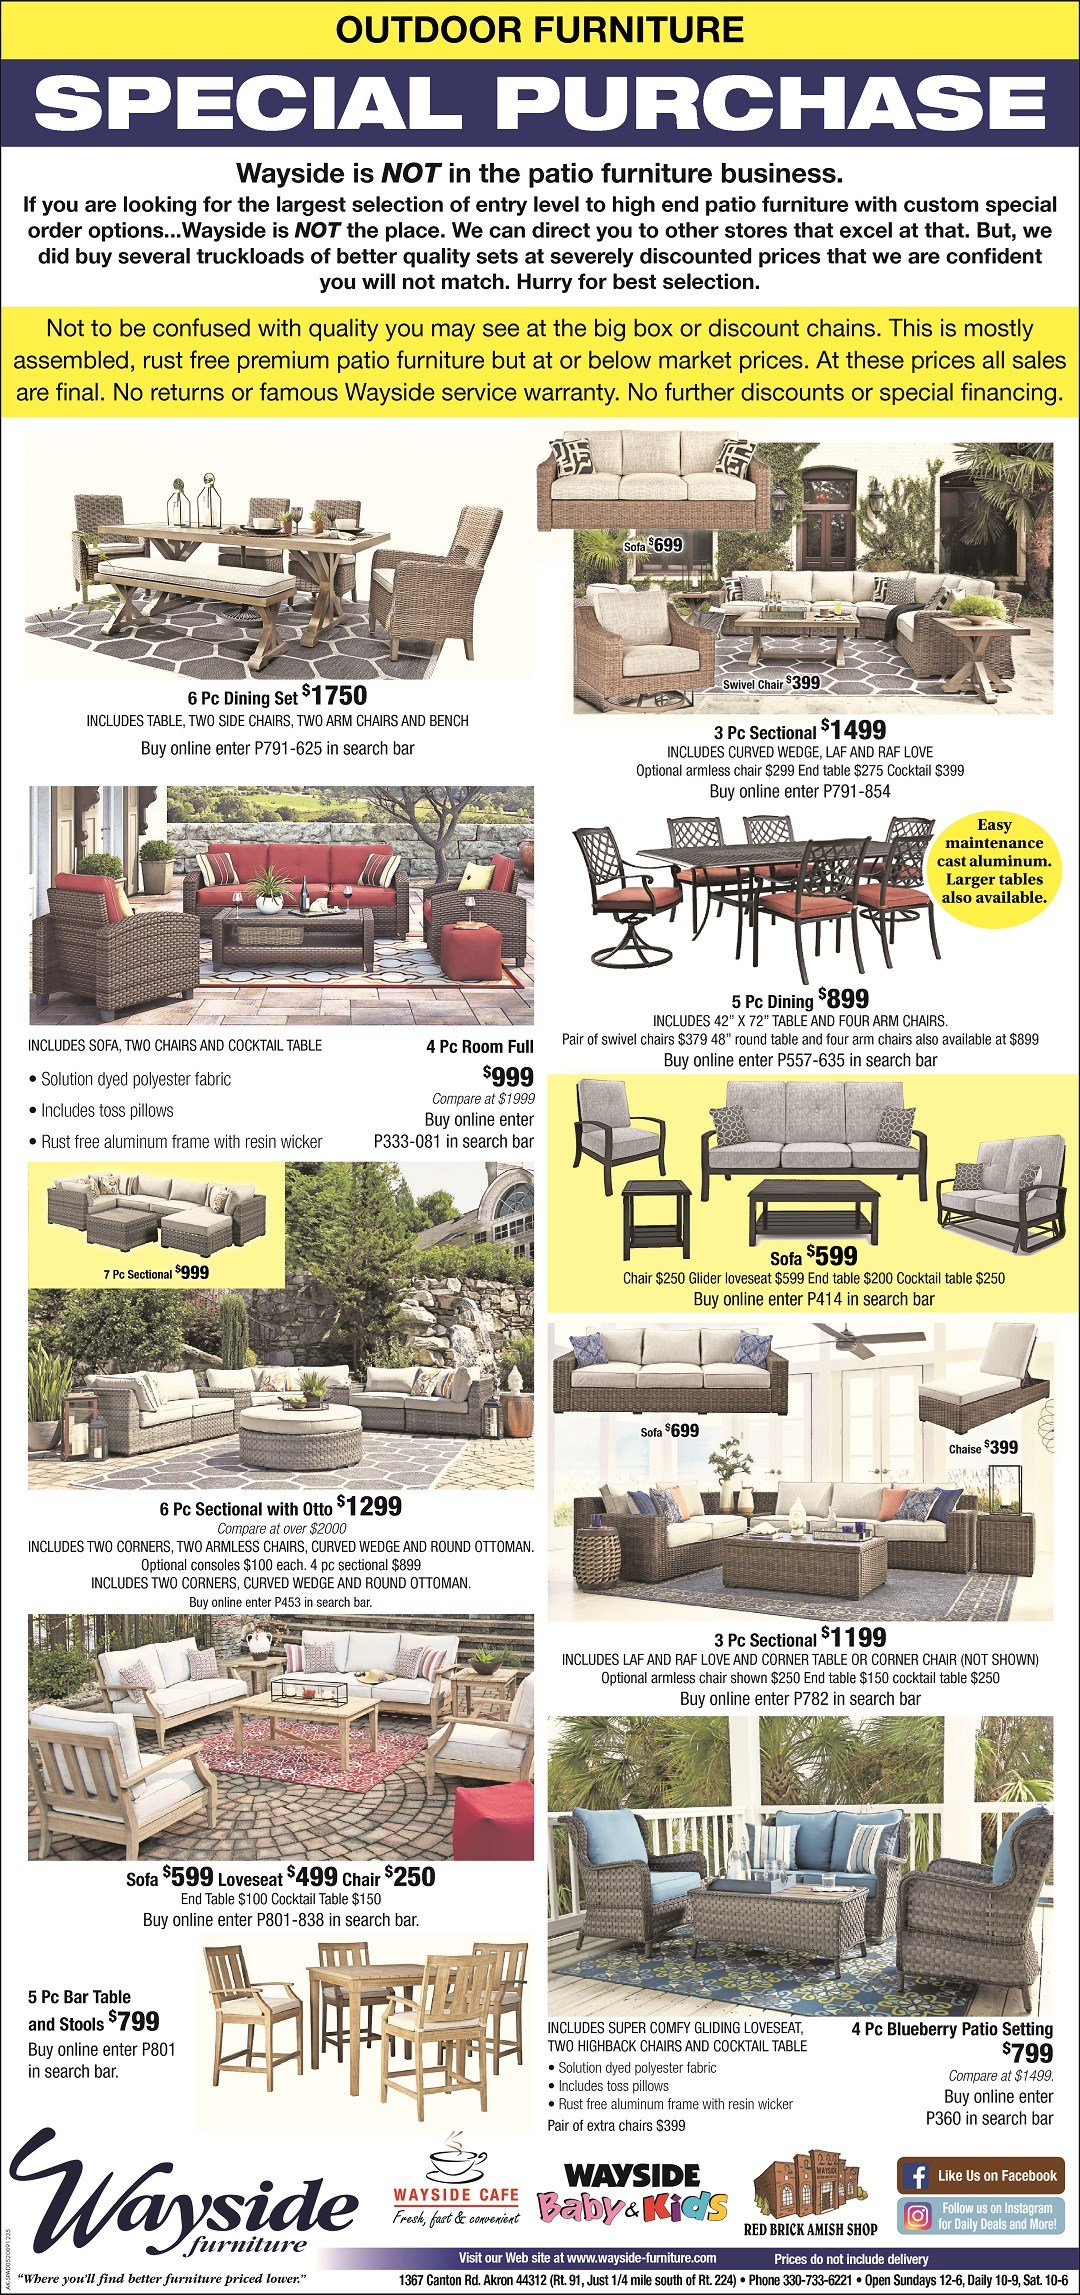 Outdoor Furniture special purchase, 3pc sectional, 5 pc dining set, sofa, chair, swivel chair, end table, 6pc dining set, glider, 7pc sectional, chaise lounge, cocktail table, ottoman, loveseat, patio set, 5pc bar table & stools